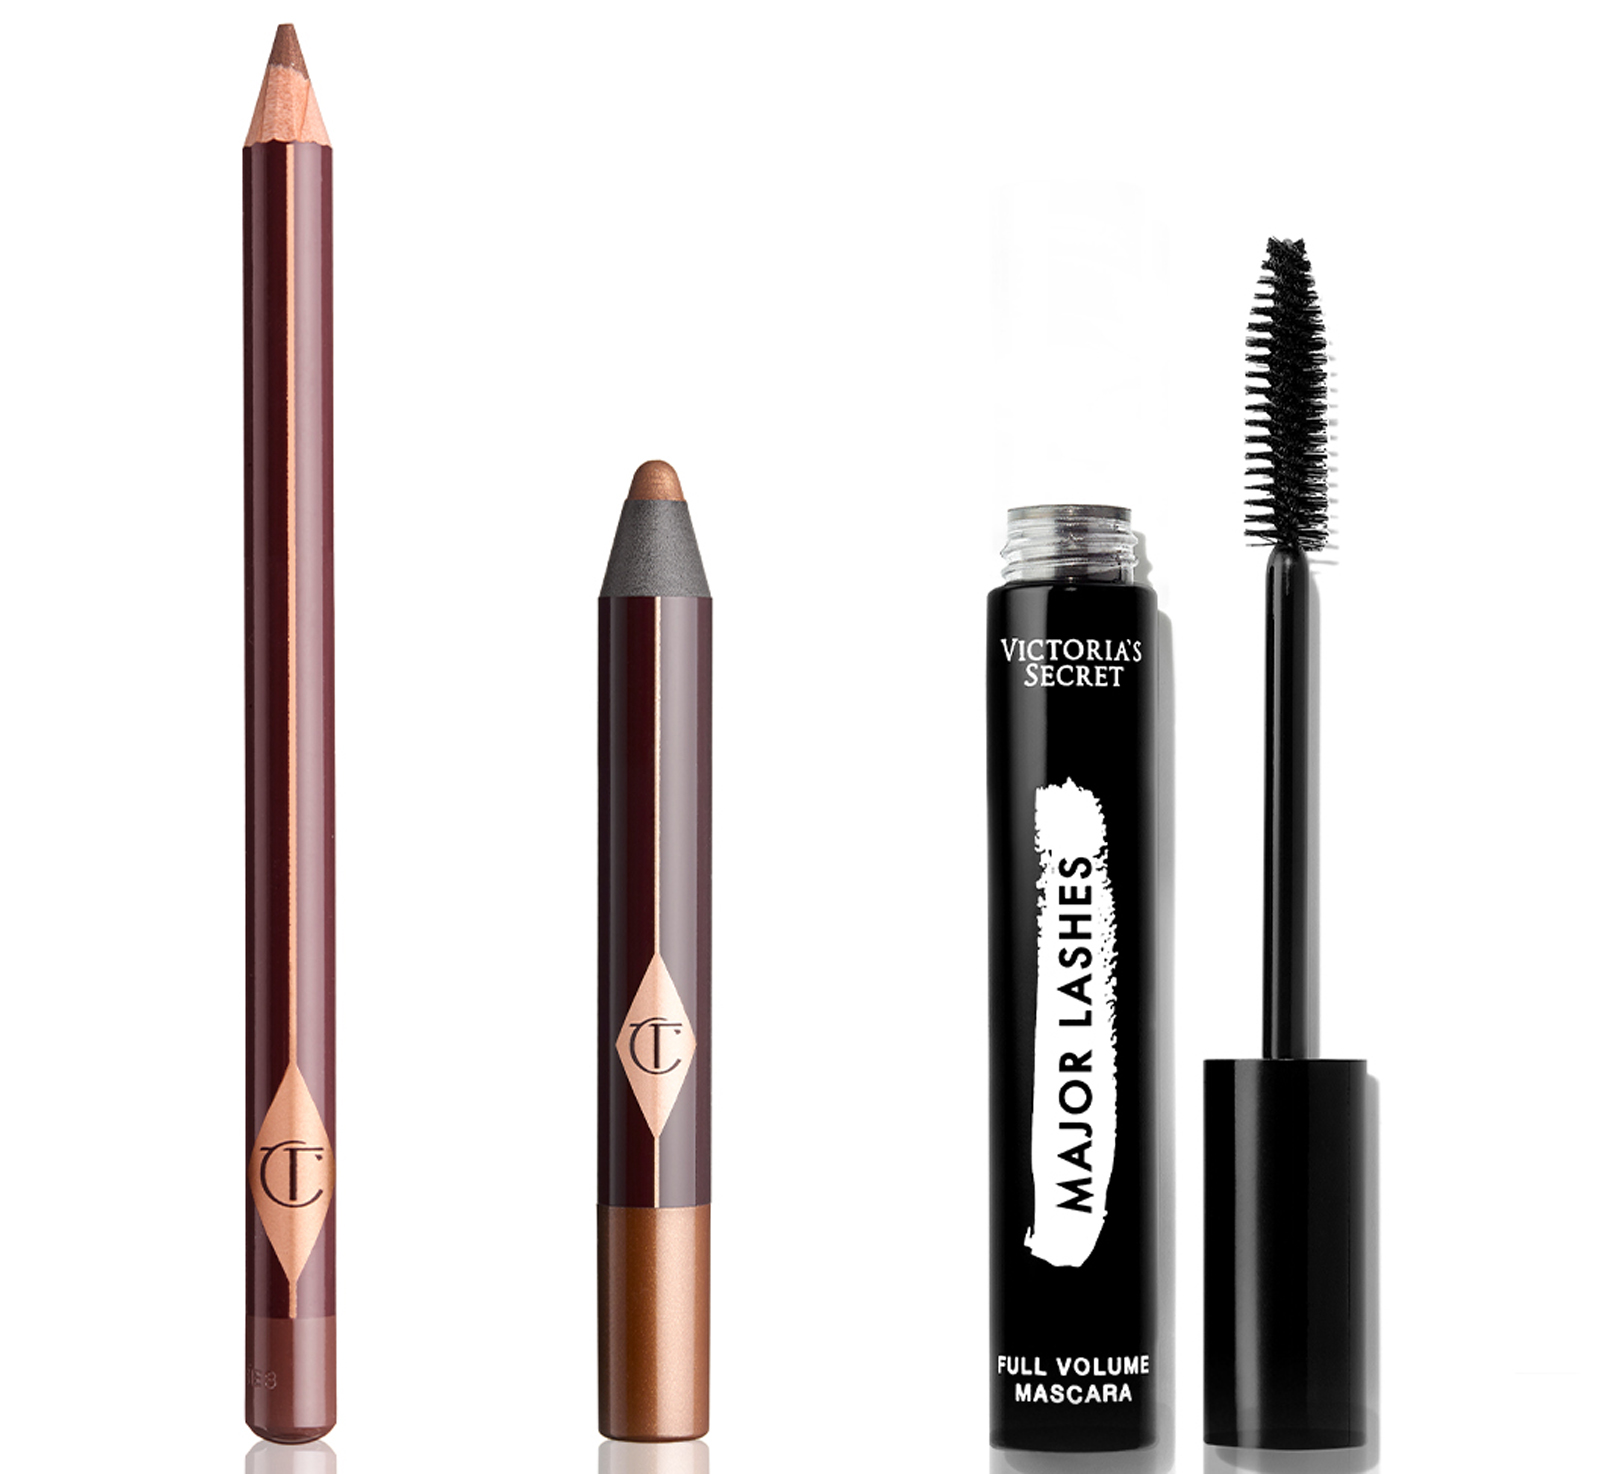 Charlotte Tilbury make-up products